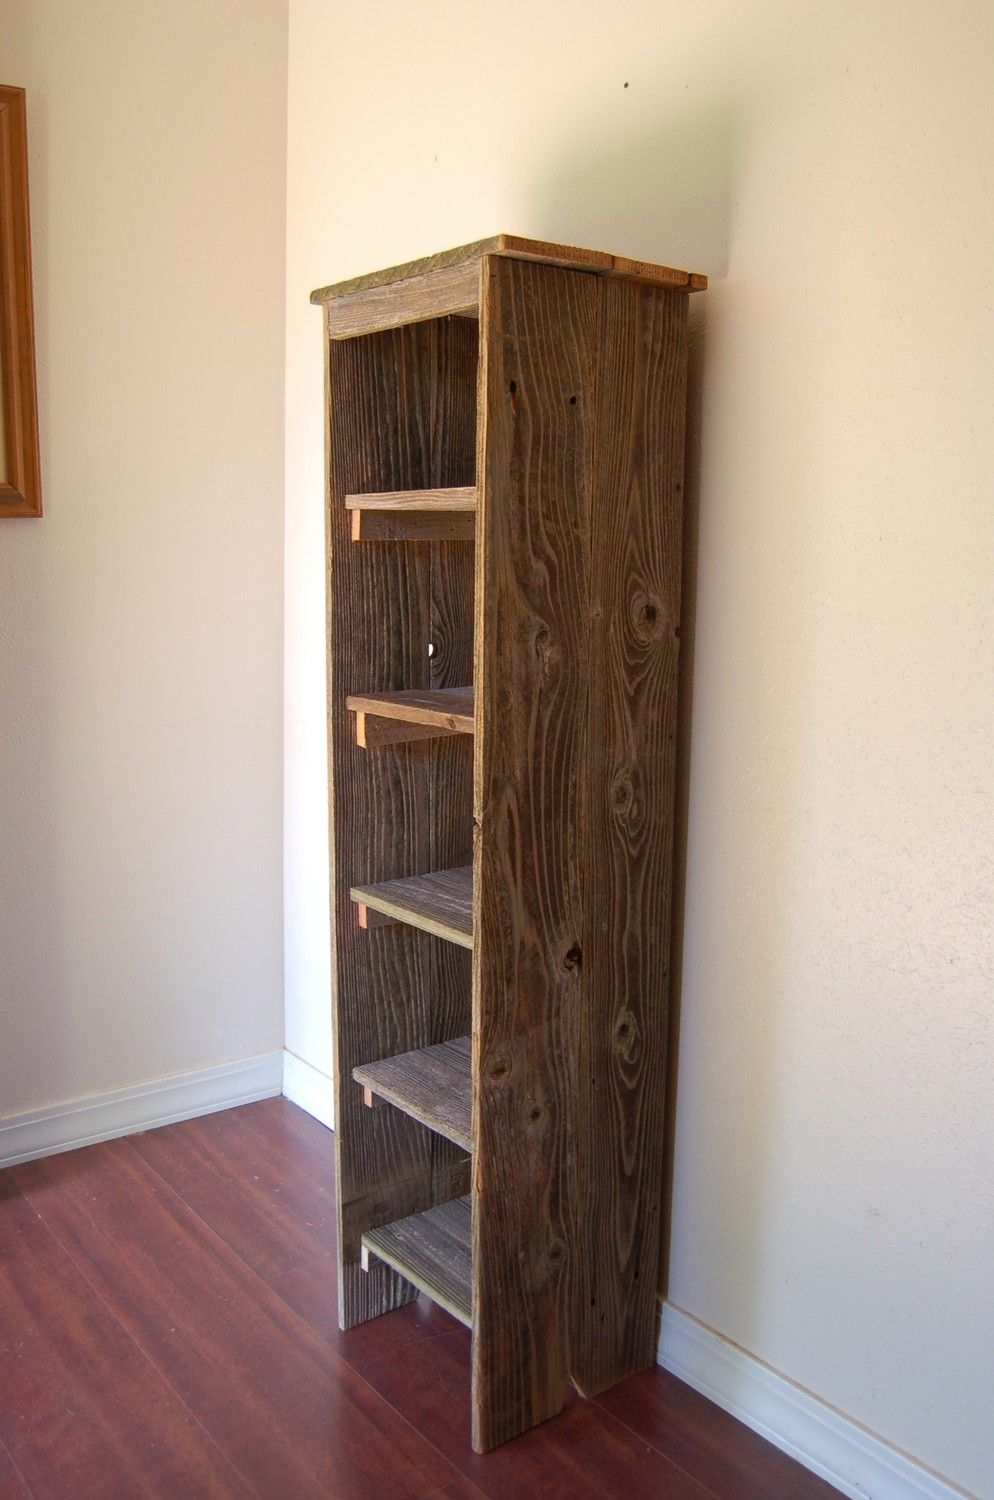 Ordinaire Wooden Bookcase. Tall Bookcase. Skinny Bookcase. Skinny Shelf. Apartment  Decor. Bathroom Shelf, Kitchen Shelf. Entry Storage Shelf